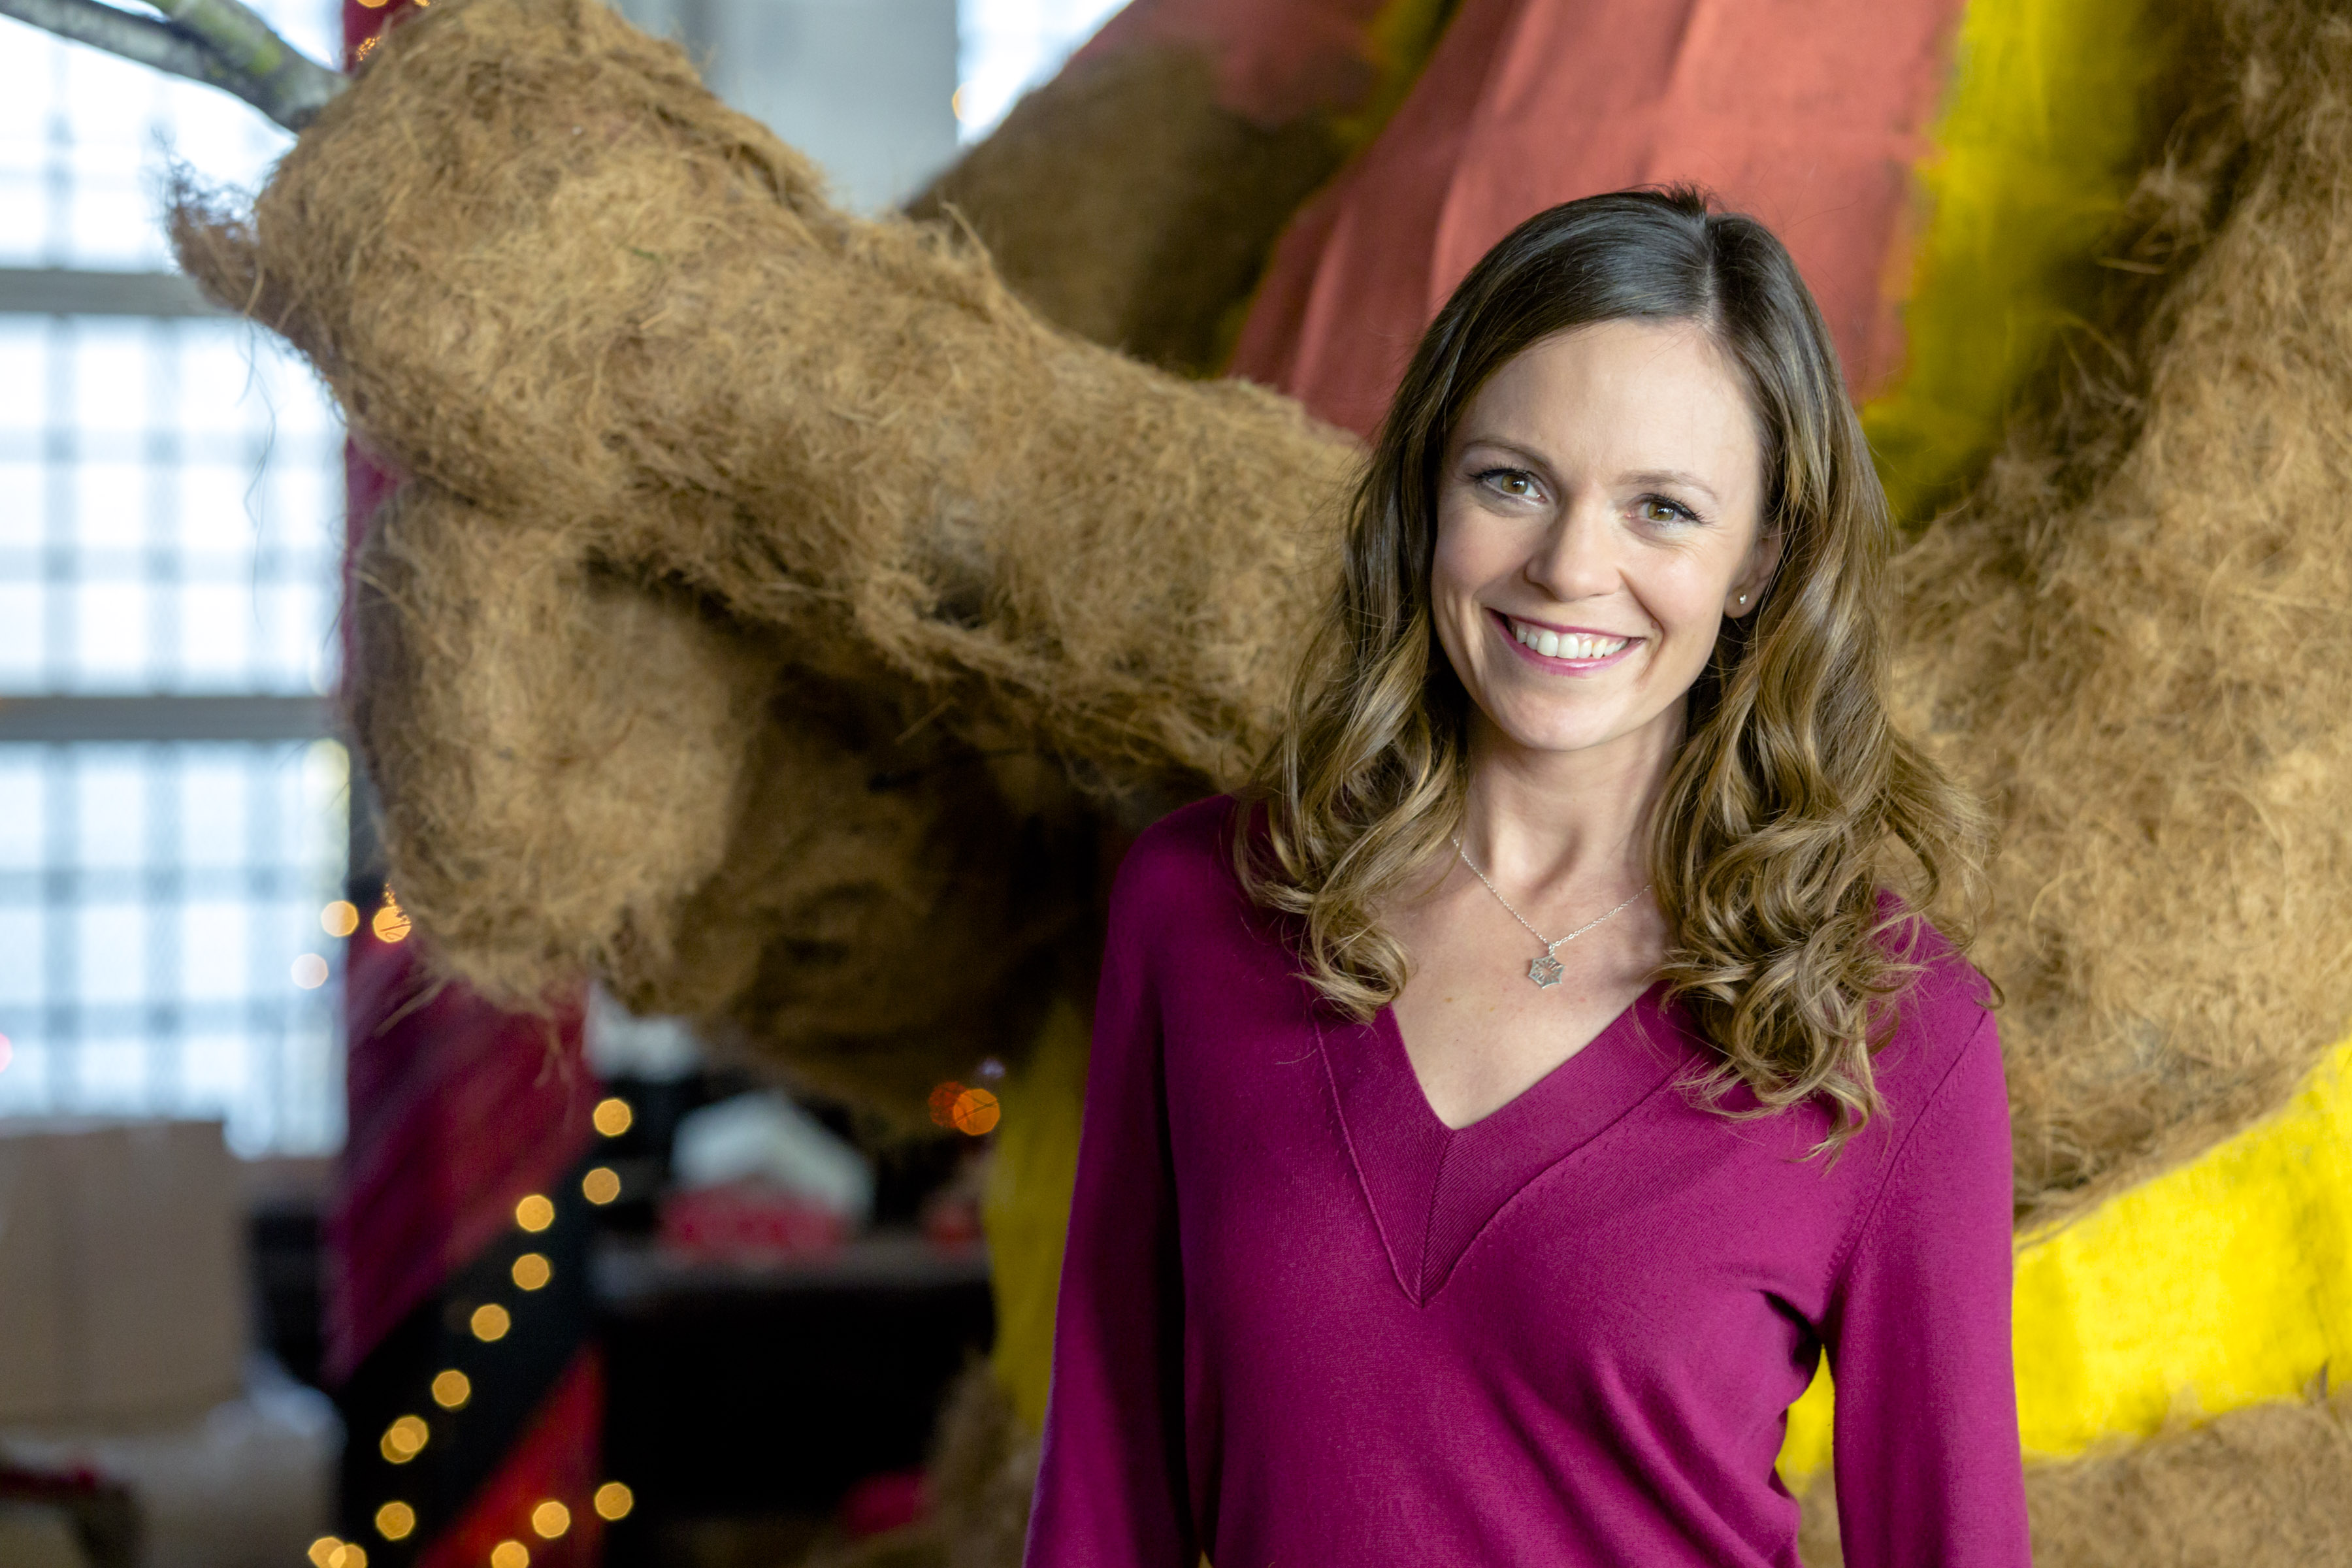 rachel boston on a rose for christmas hallmark channel